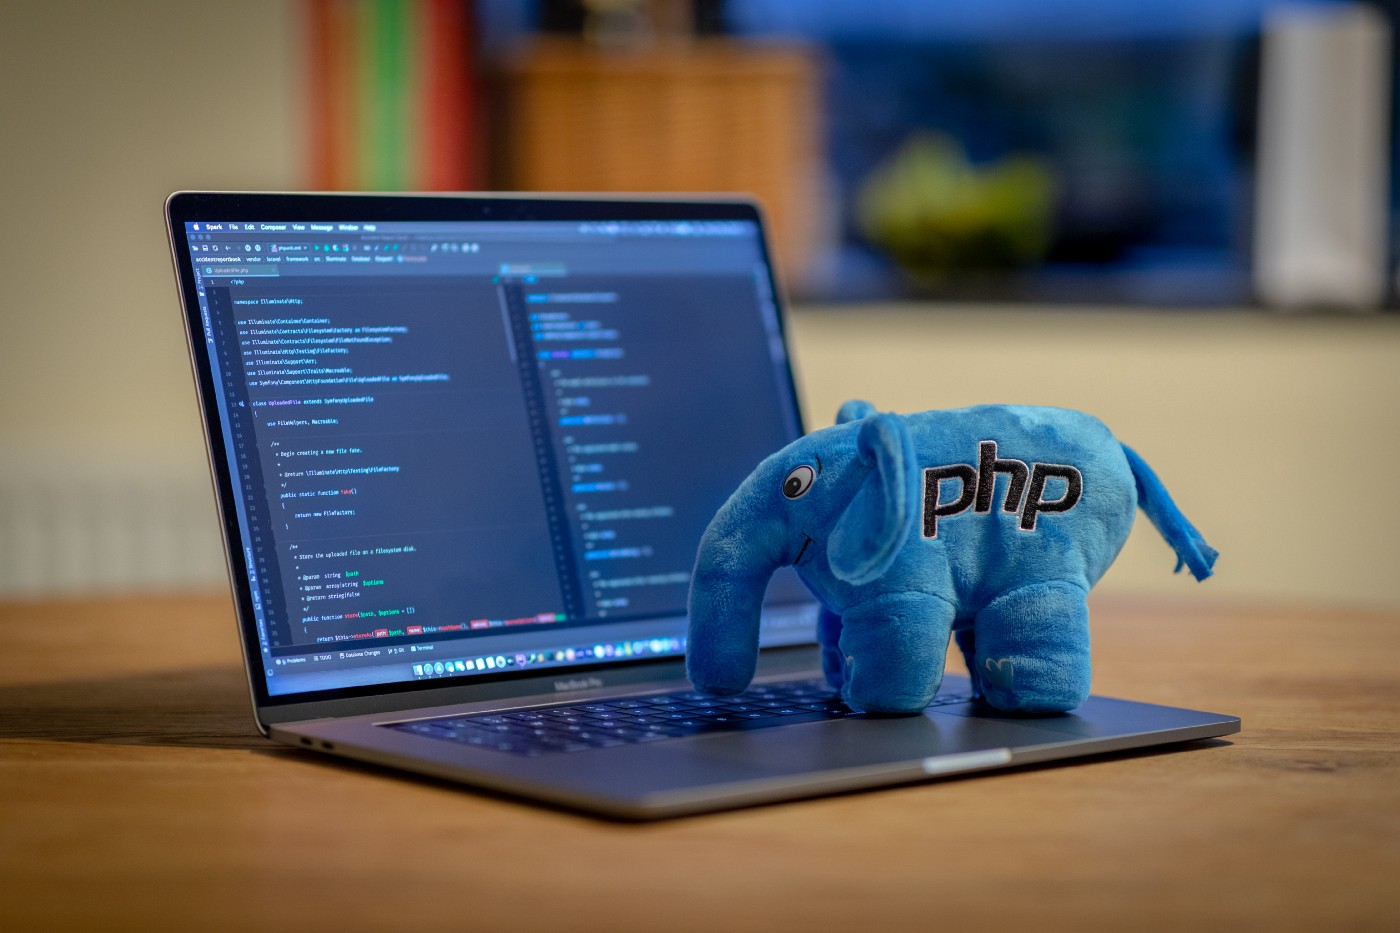 small blue toy elephant with the letters PHP on its side, in front of an open notebook computer